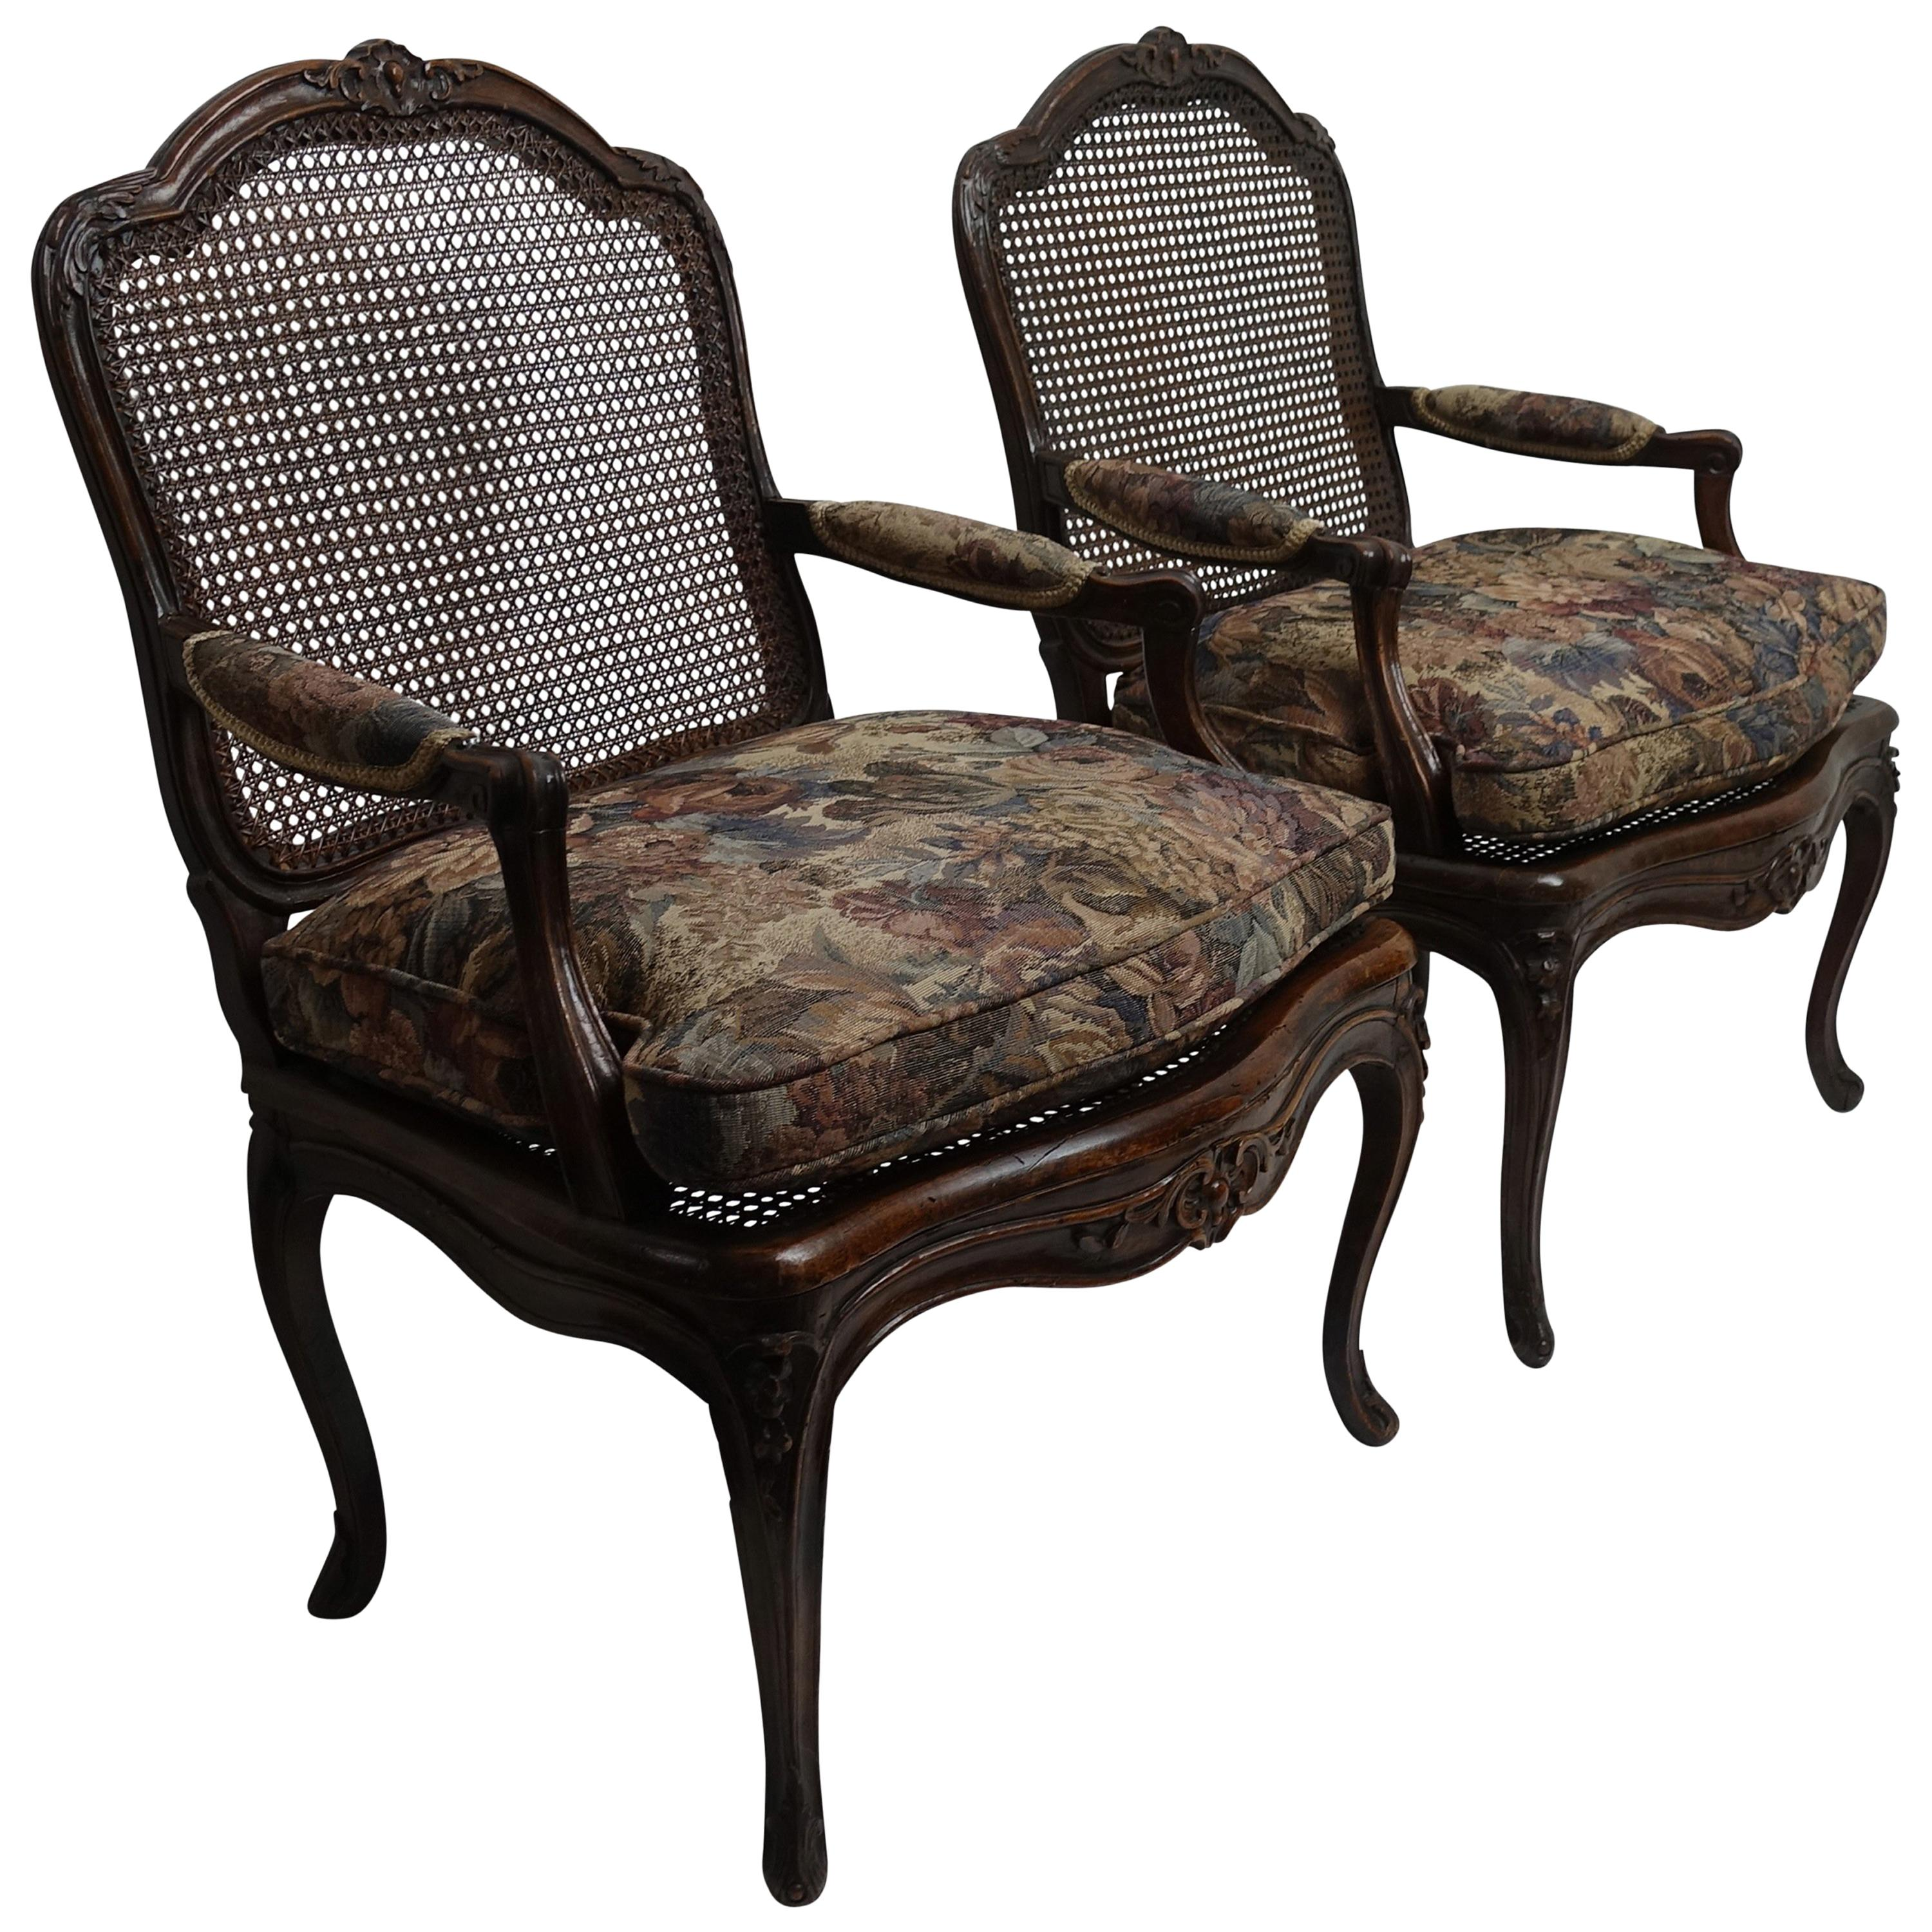 Pair of Regence Armchairs with Cane Seats and Backrests, 18th Century